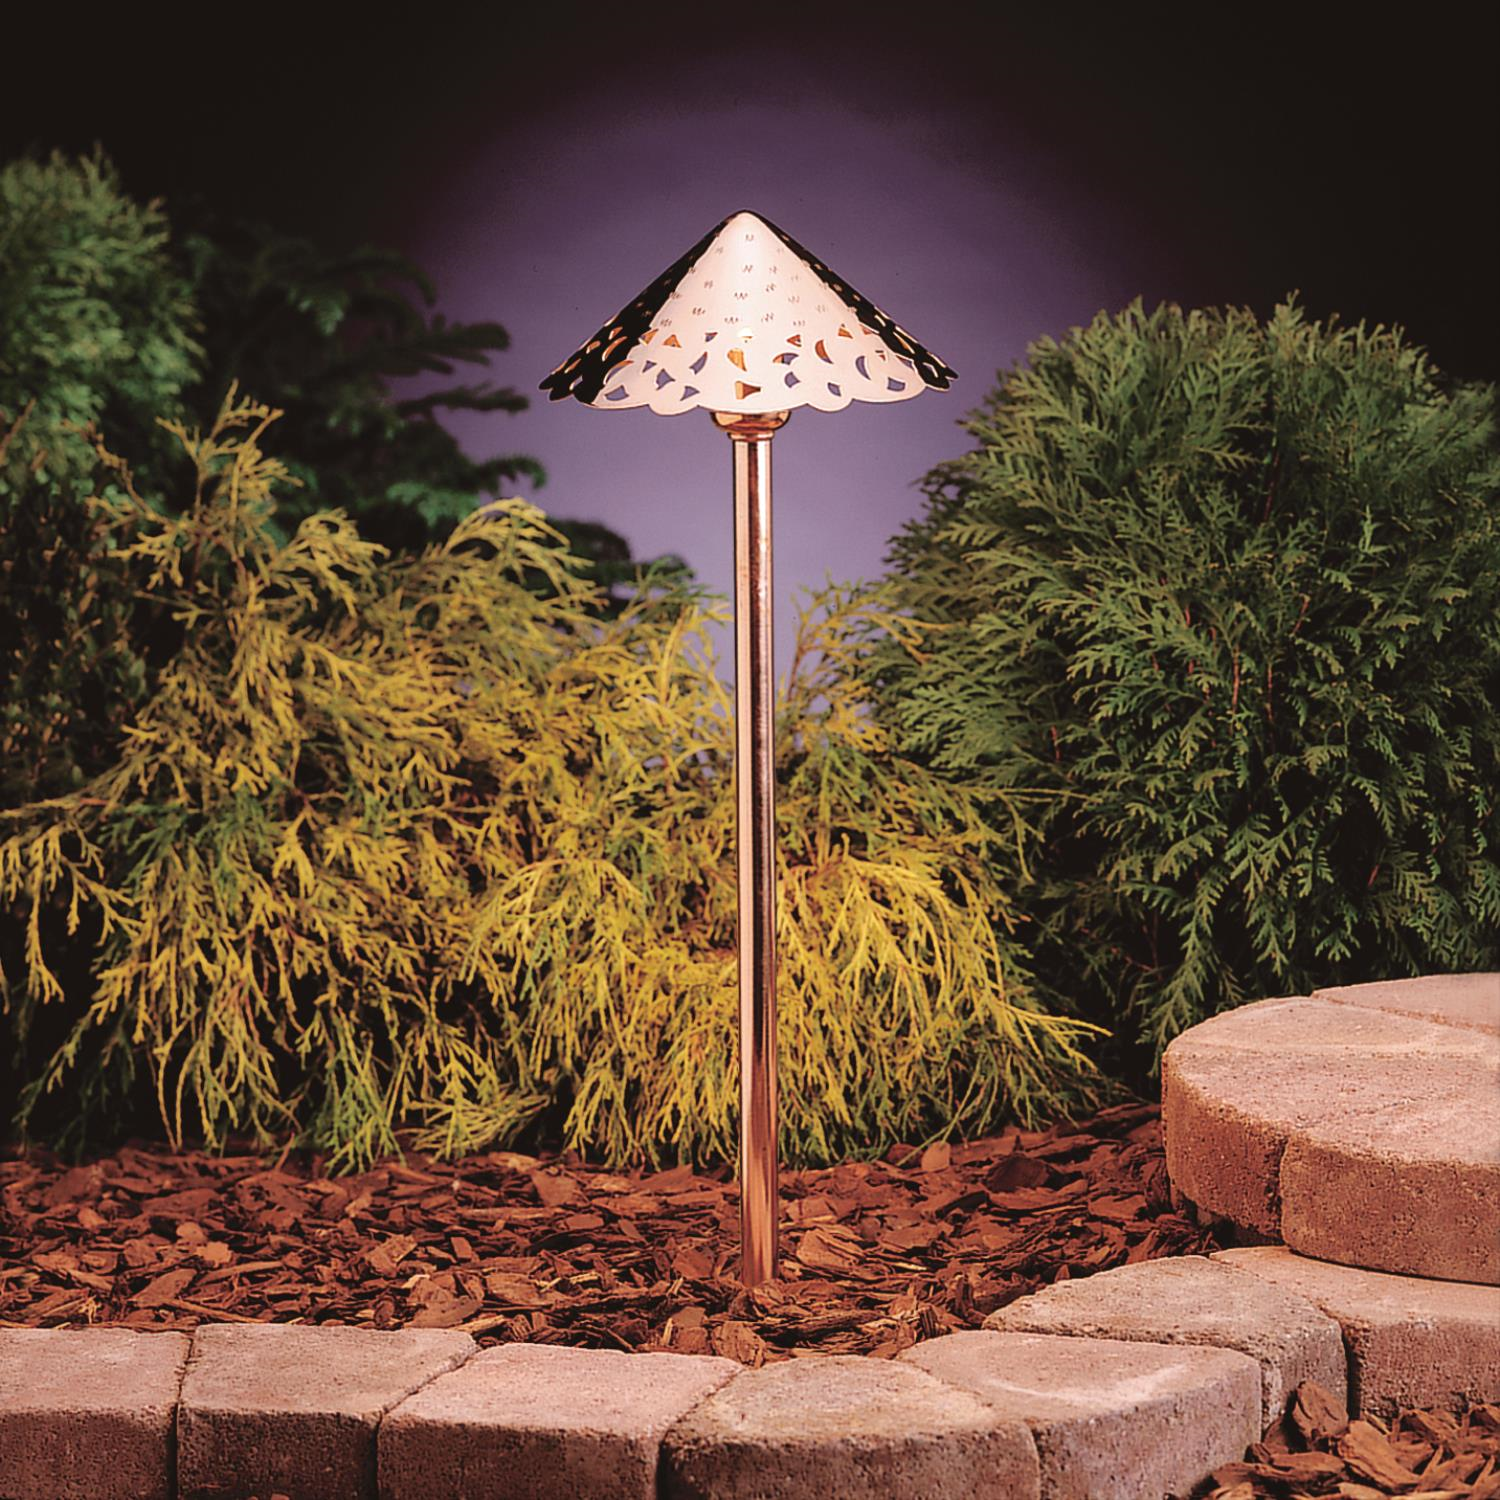 Primary image for Kichler 15843CO27 Landscape led Landscape 8in 3-light